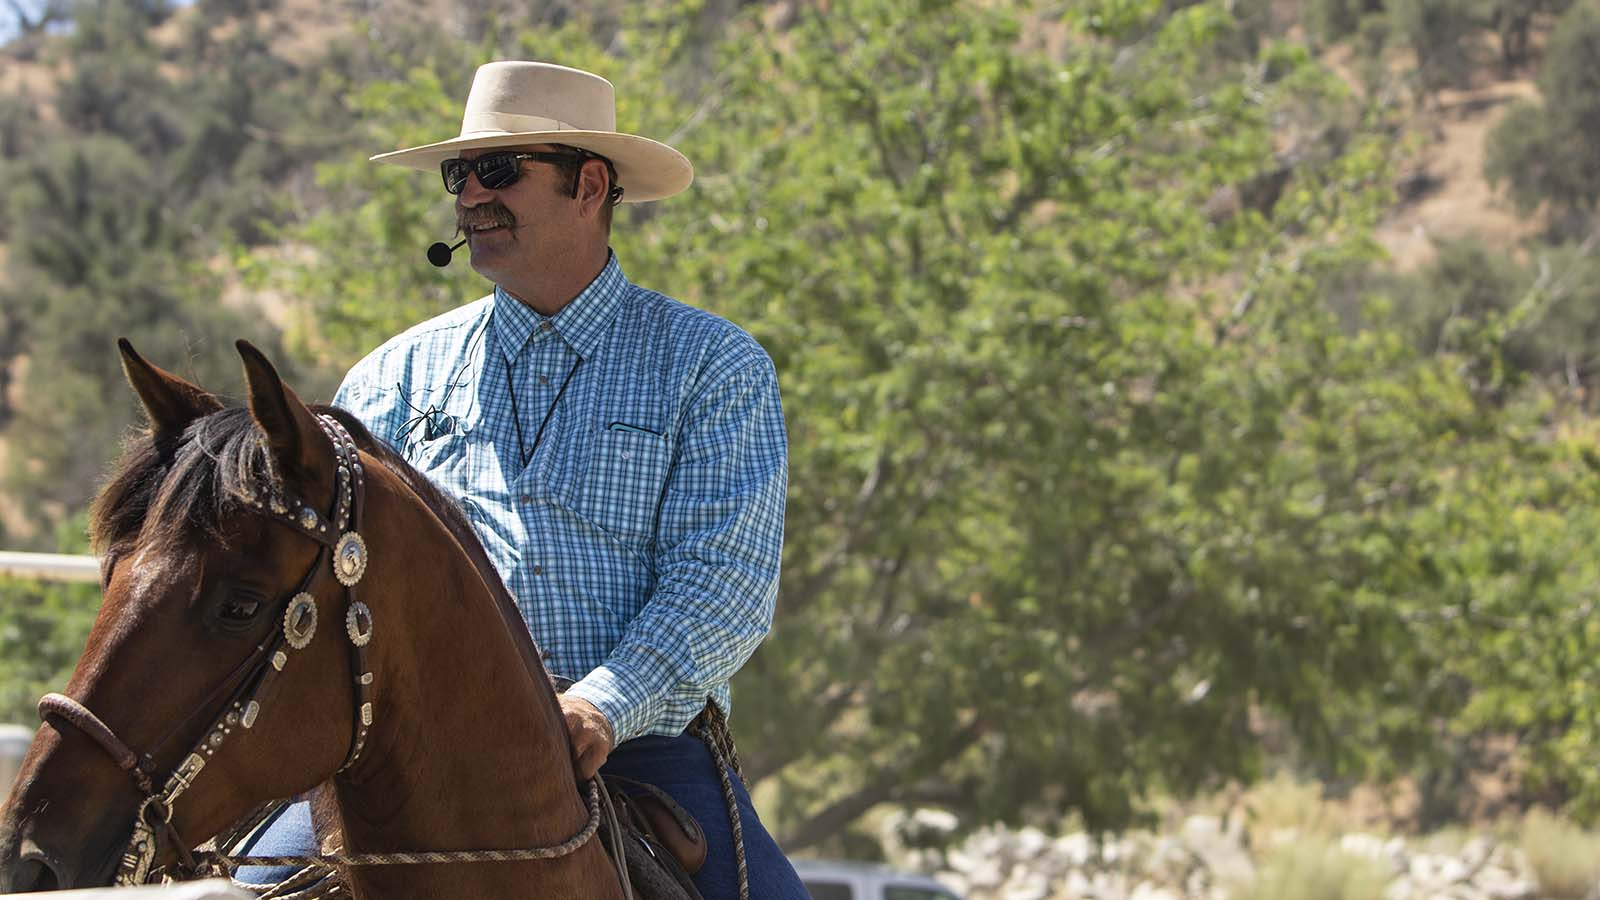 Bruce Sandifer says to go slow when teaching a horse to neck rein.